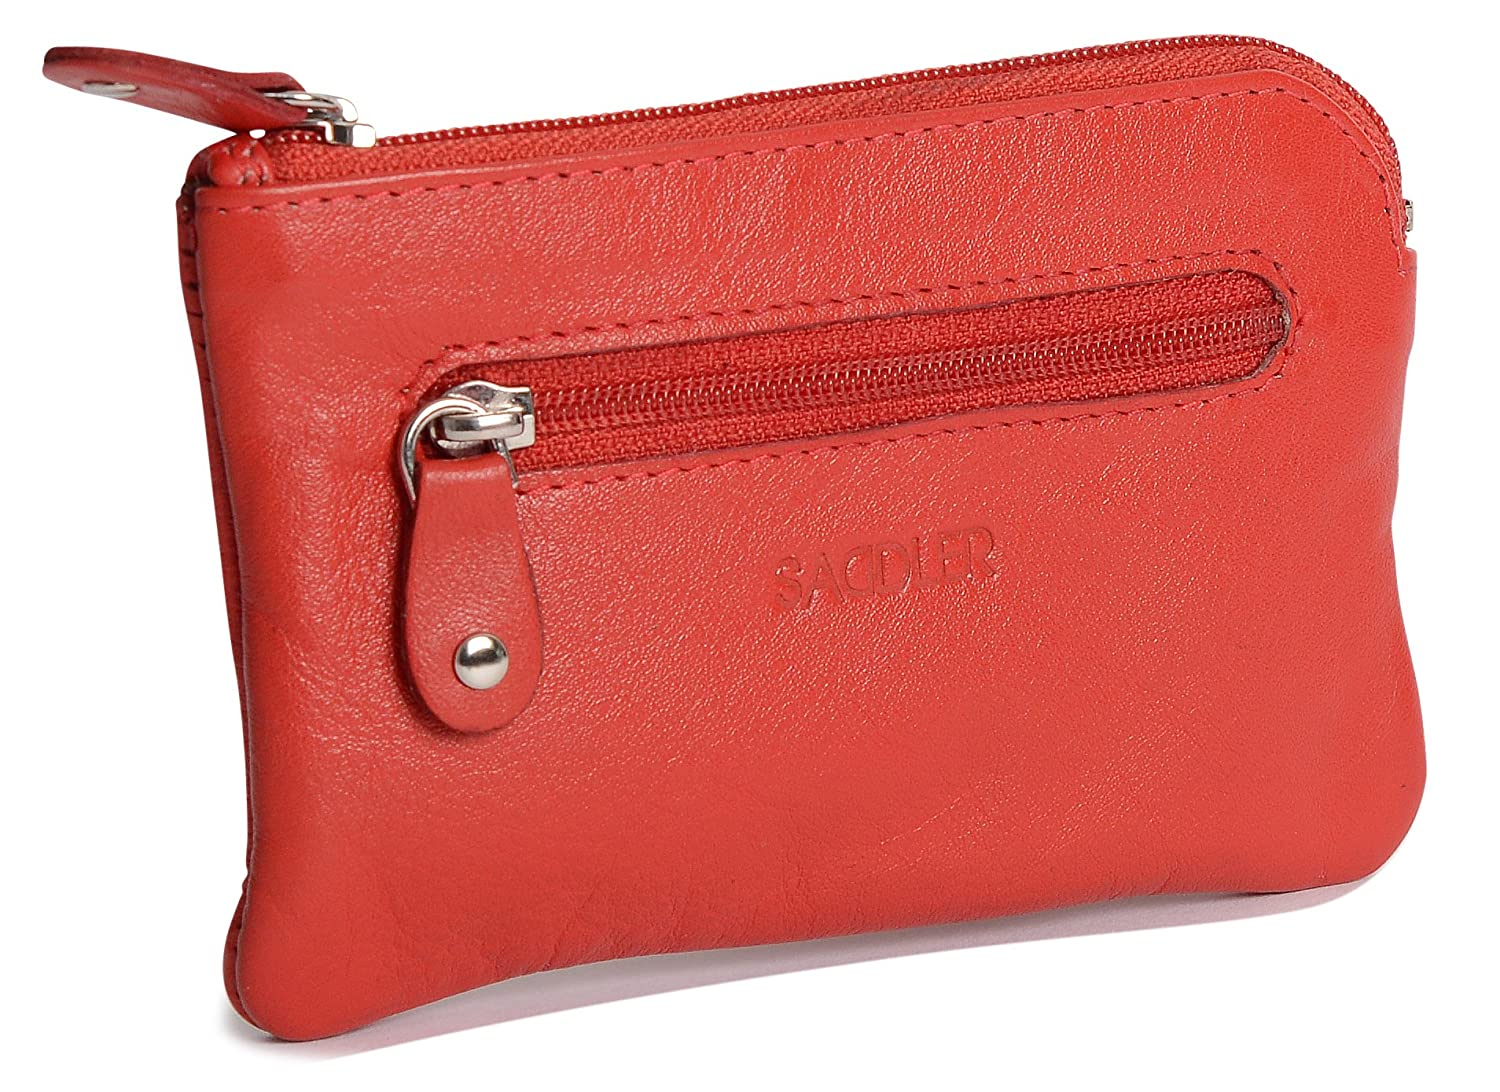 SADDLER Genuine Leather Womens Slim Mini Credit Card Ladies Wallet Change Coin Purse Pouch - Teal SADDL-2060-TEAL